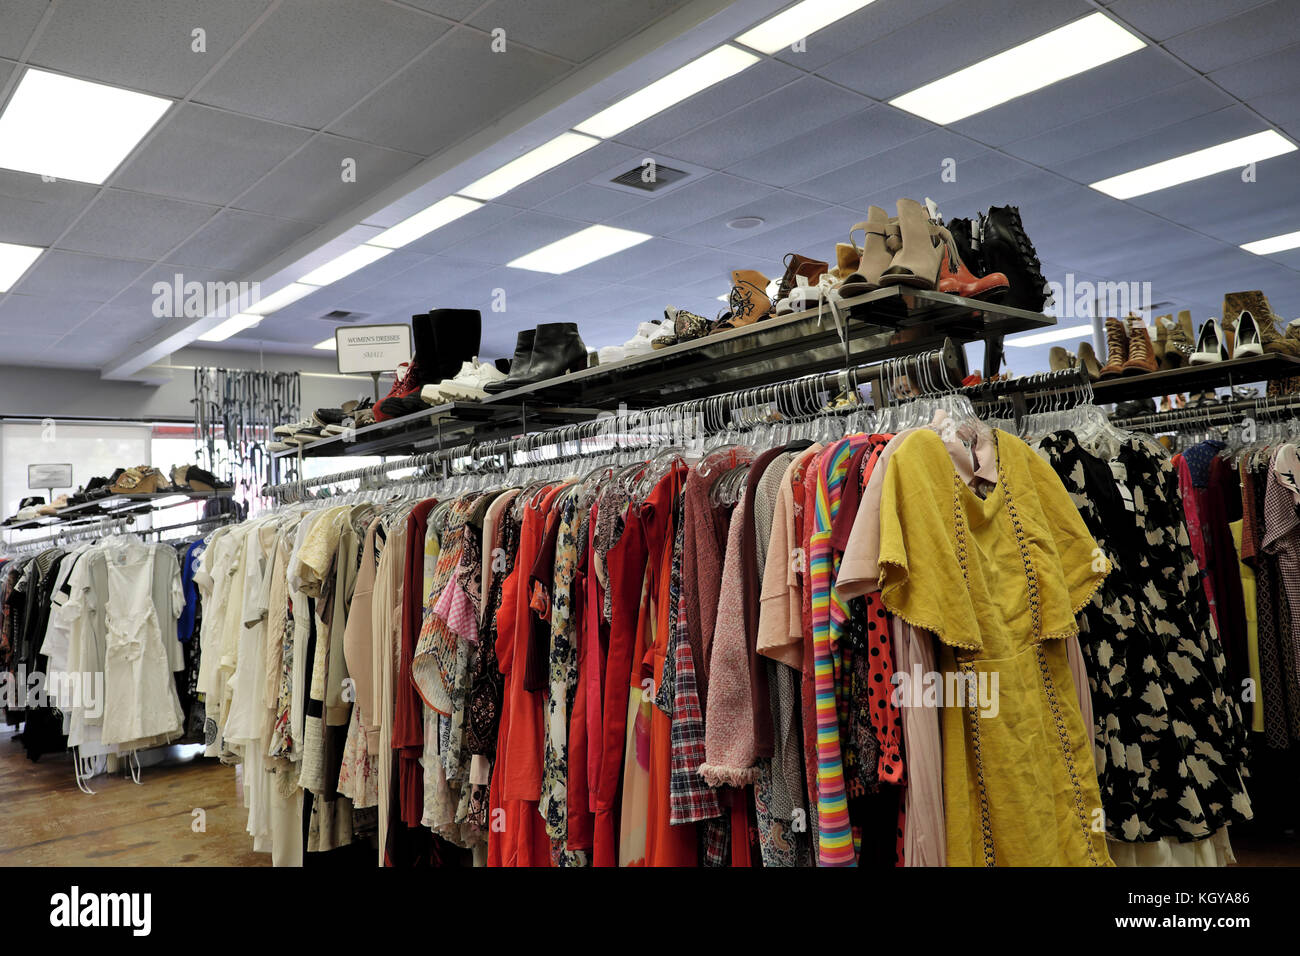 Crossroads Trading Company Second Hand recycled clothing store on Sunset Blvd Silverlake Silver Lake area Los Feliz, - Stock Image